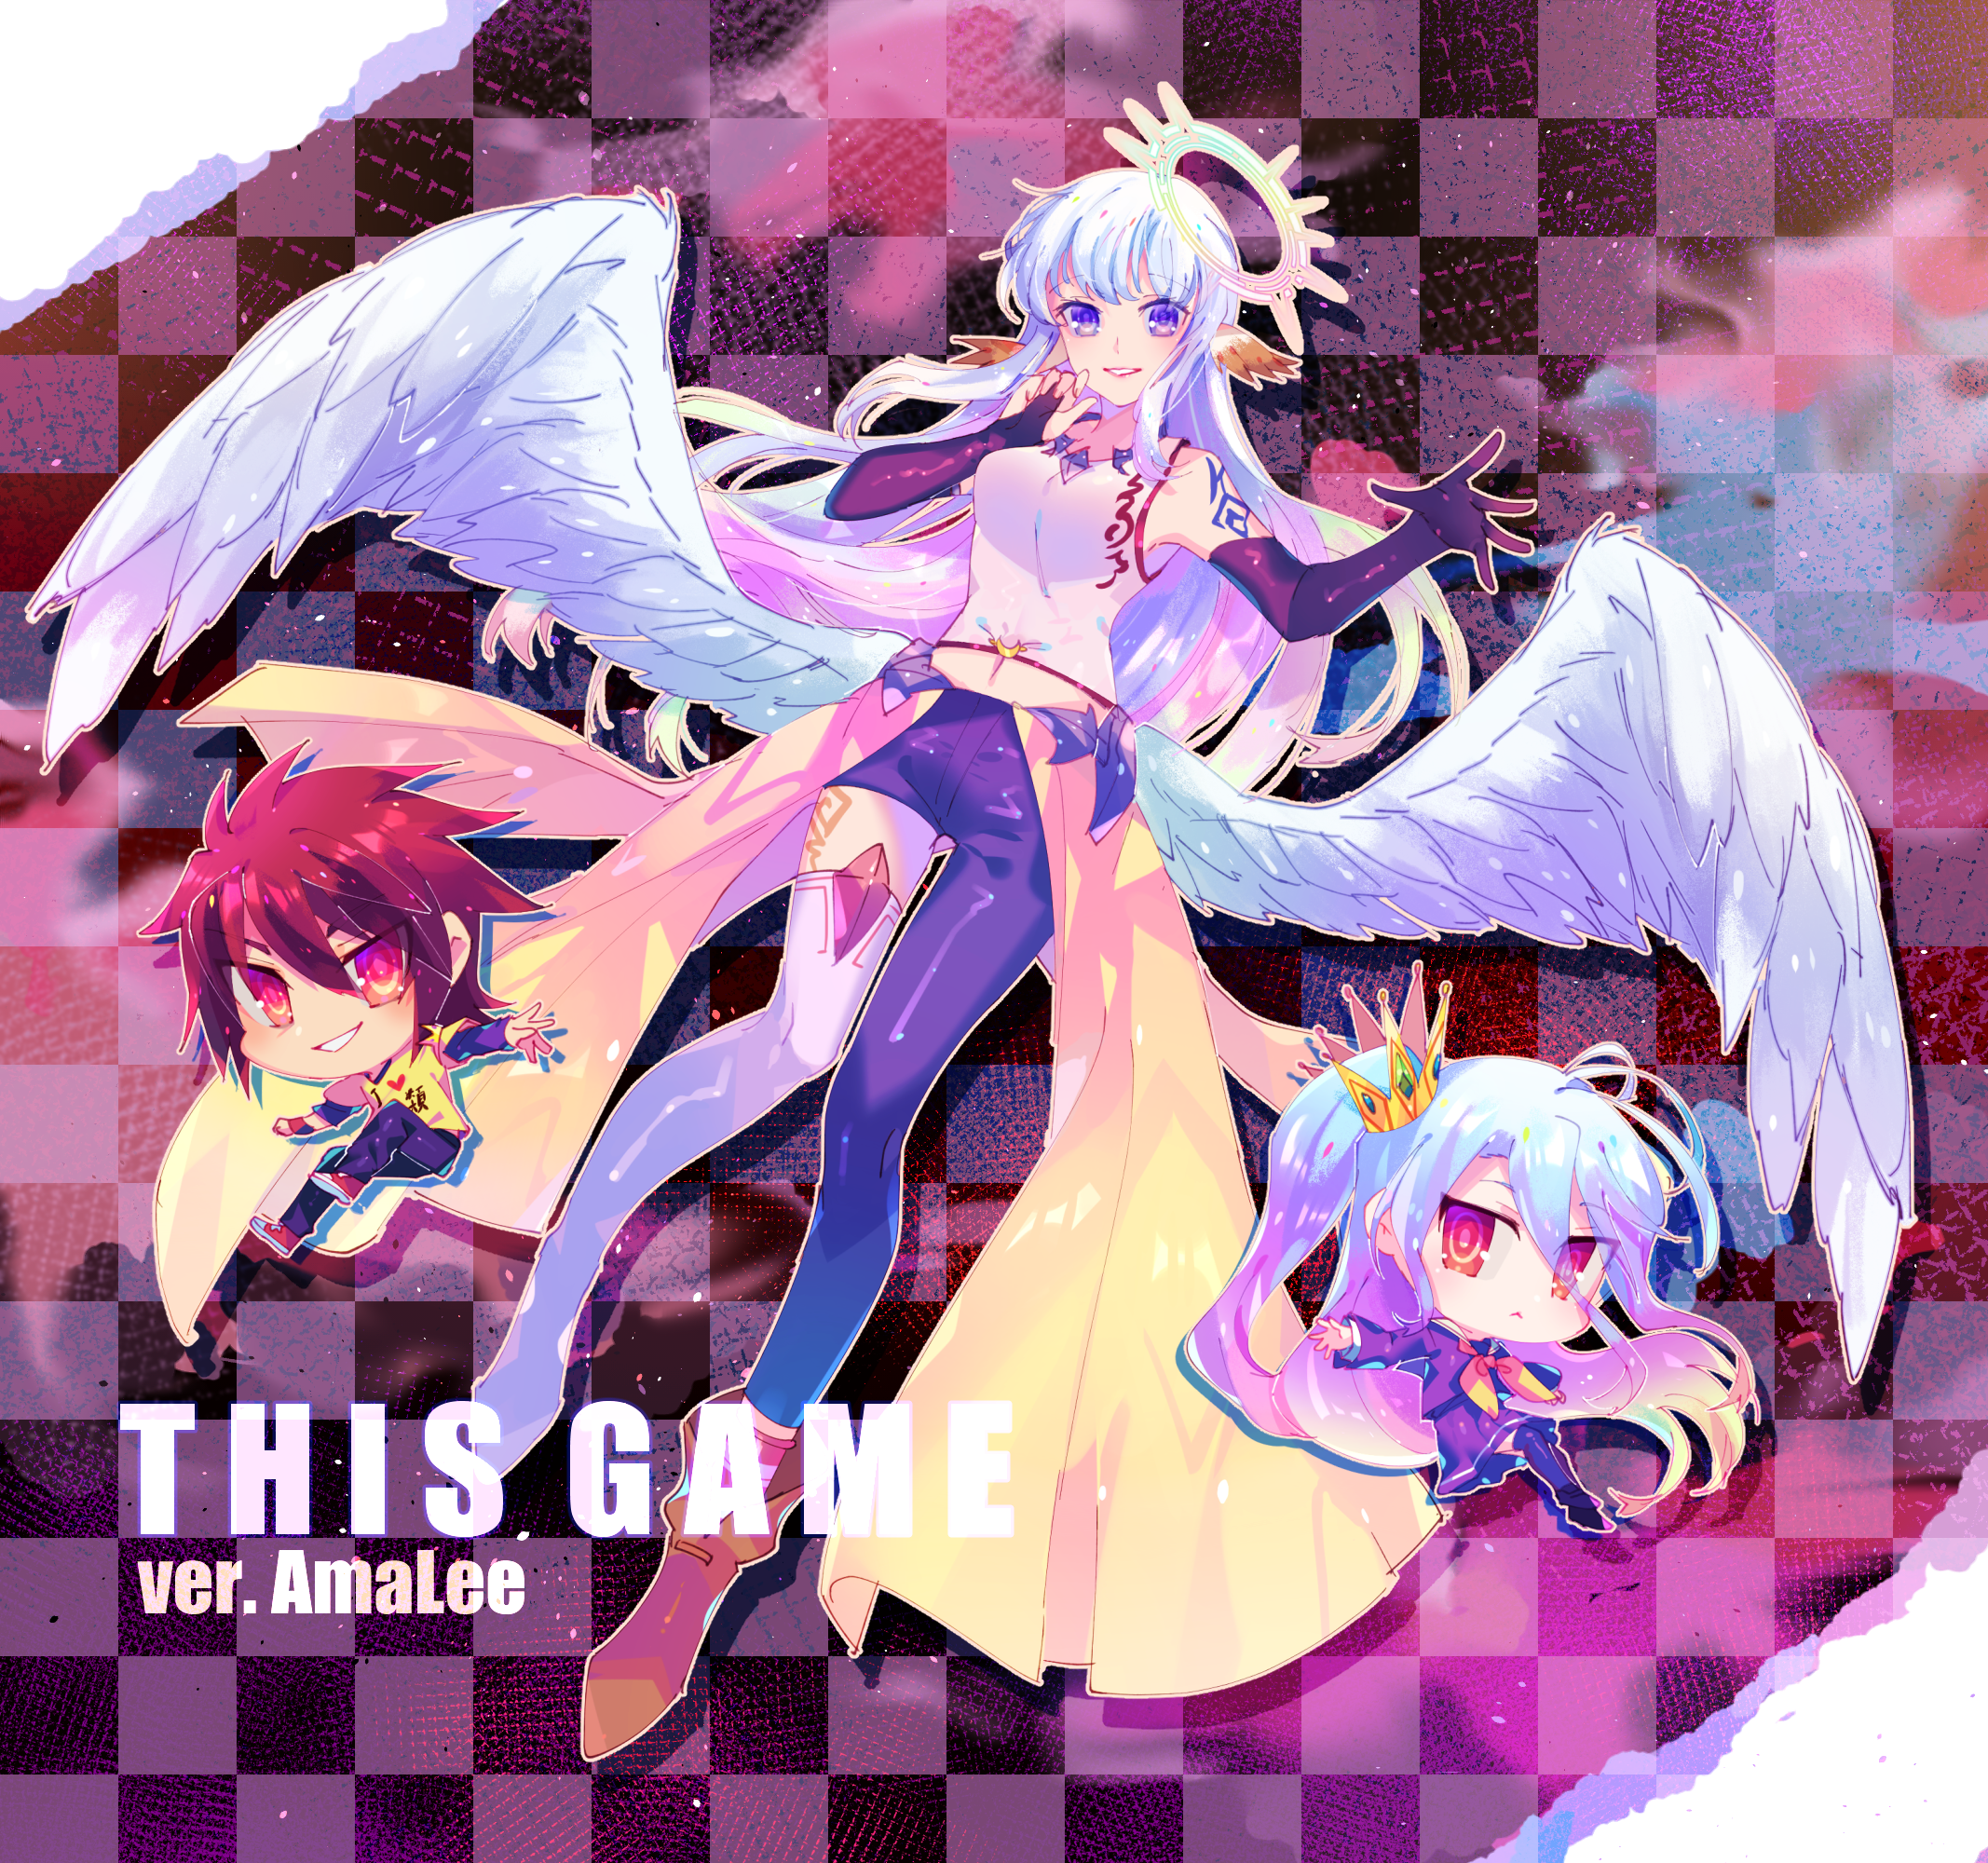 THIS GAME ver. AmaLee